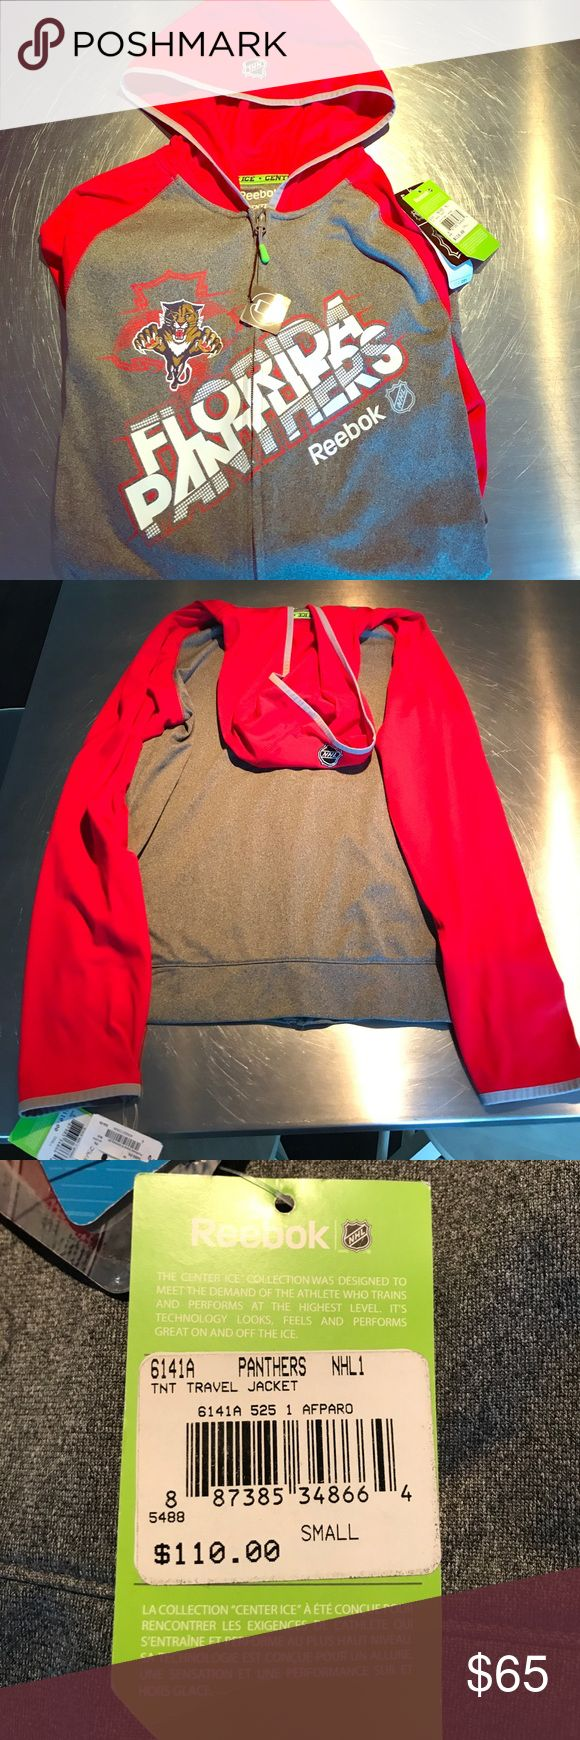 NWT Reebok NHL Panthers hoodie men's small😍 Amazing brand new with tags Reebok center ice collection hoodie in size men's small play dry material retails for 110 Shirts Sweatshirts & Hoodies